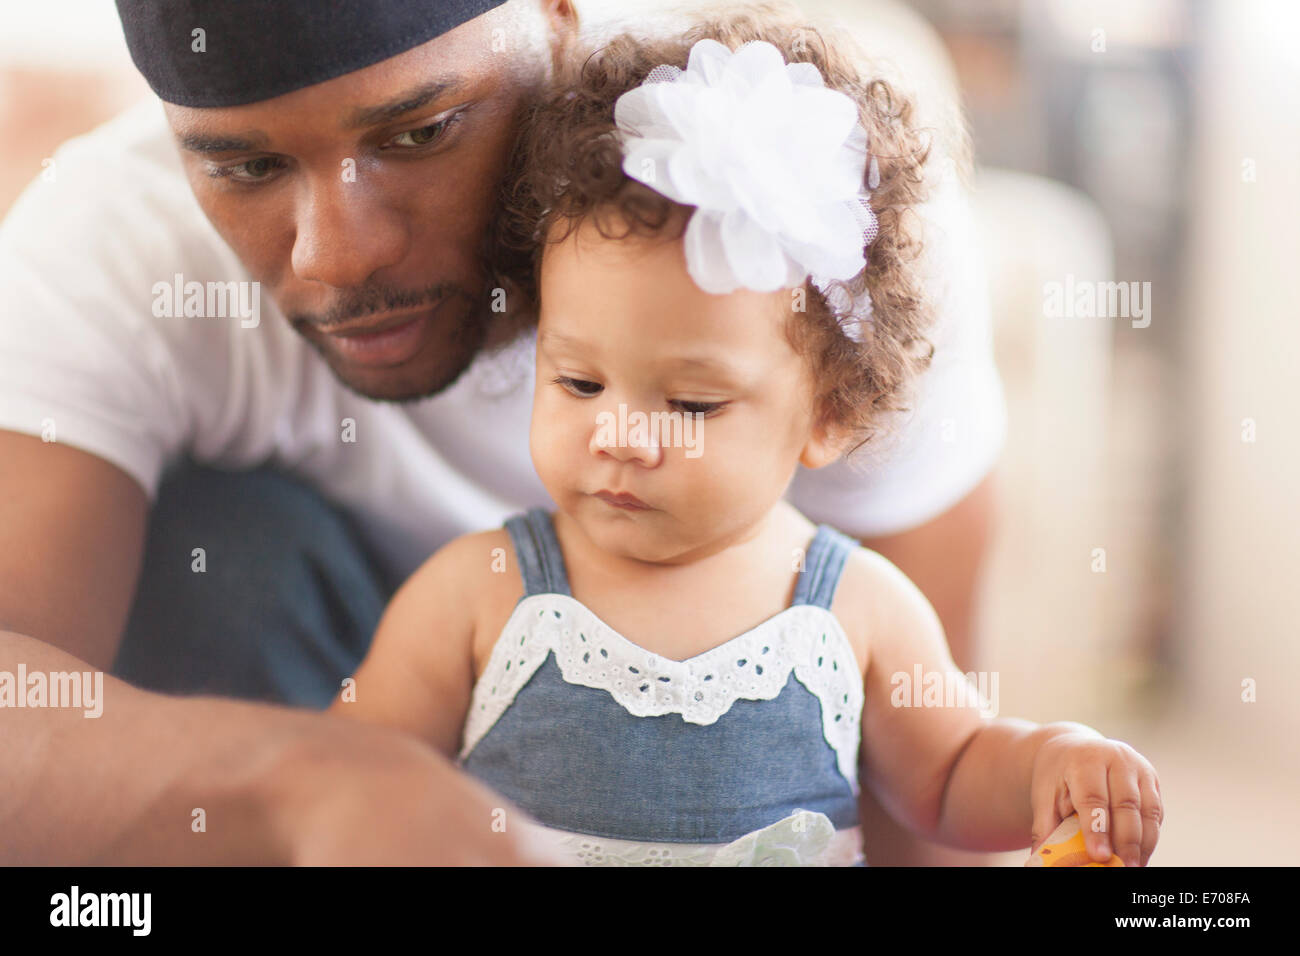 Father playing with young daughter - Stock Image